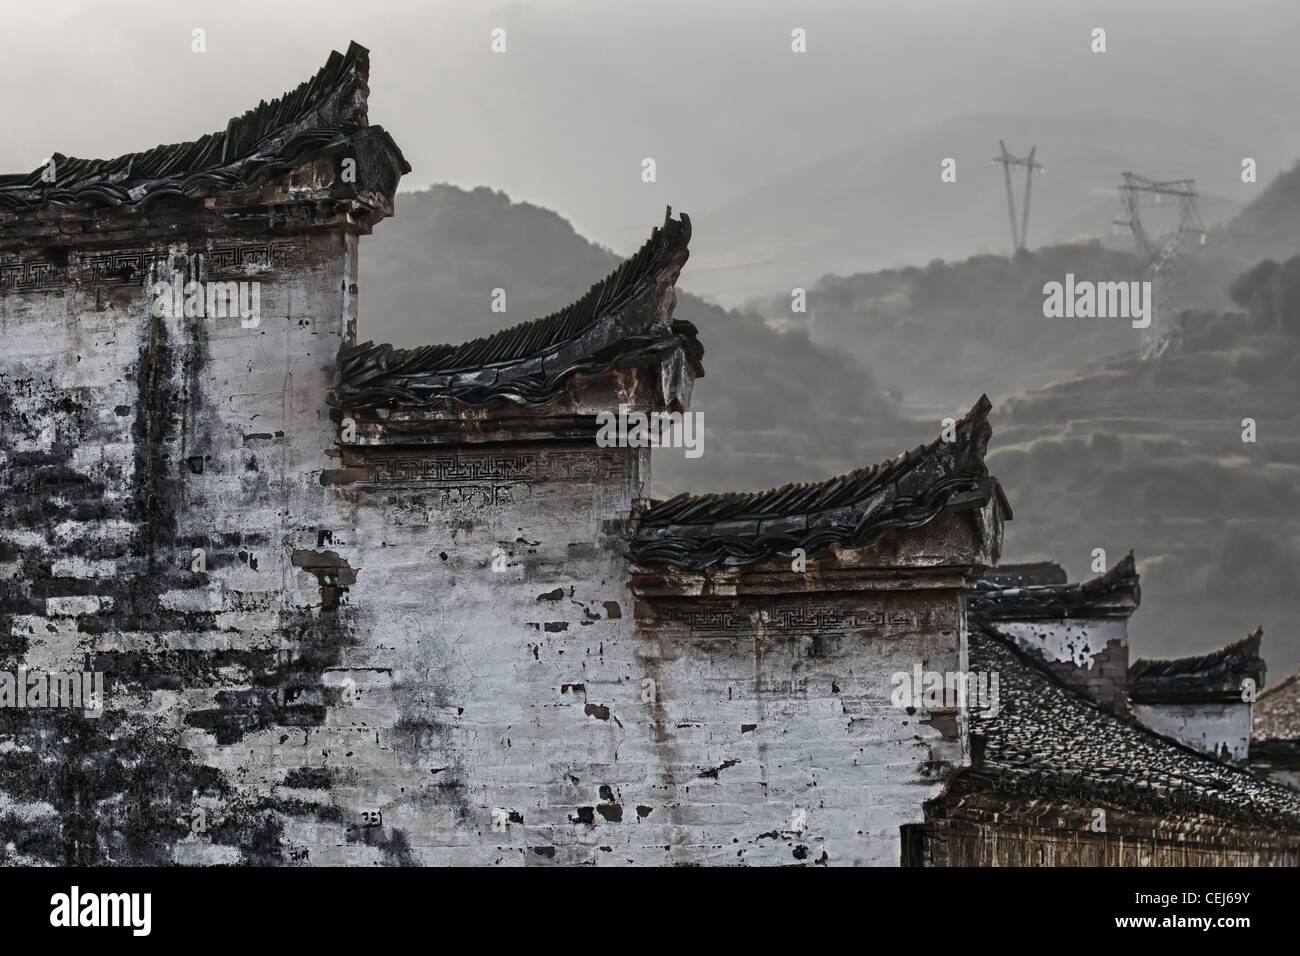 A Chinese Hui Style Wall And Roof Shaped Like Horse Heads Harmonized With Black White Color Mountains In The Background